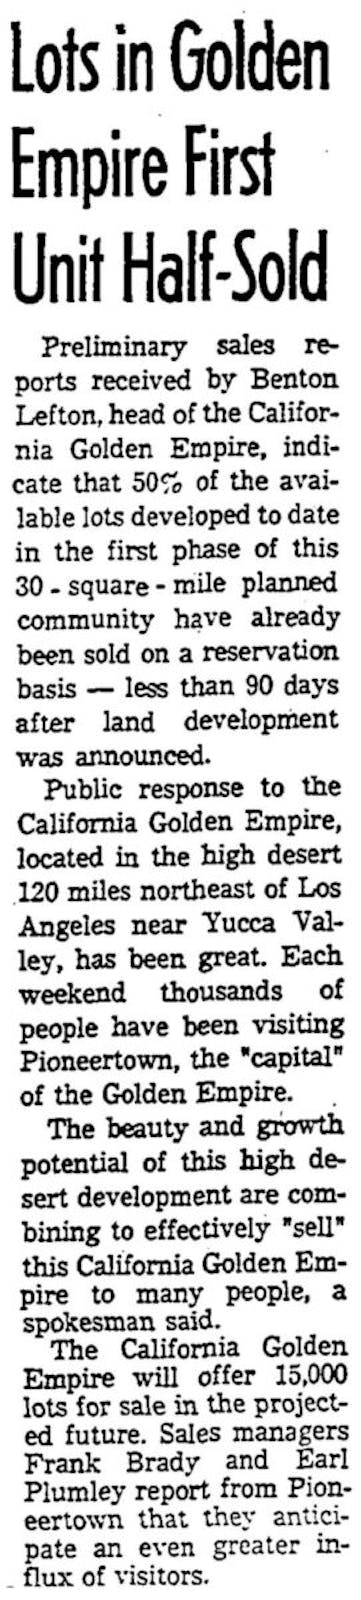 Mar. 27, 1966 - Los Angeles Times article clipping